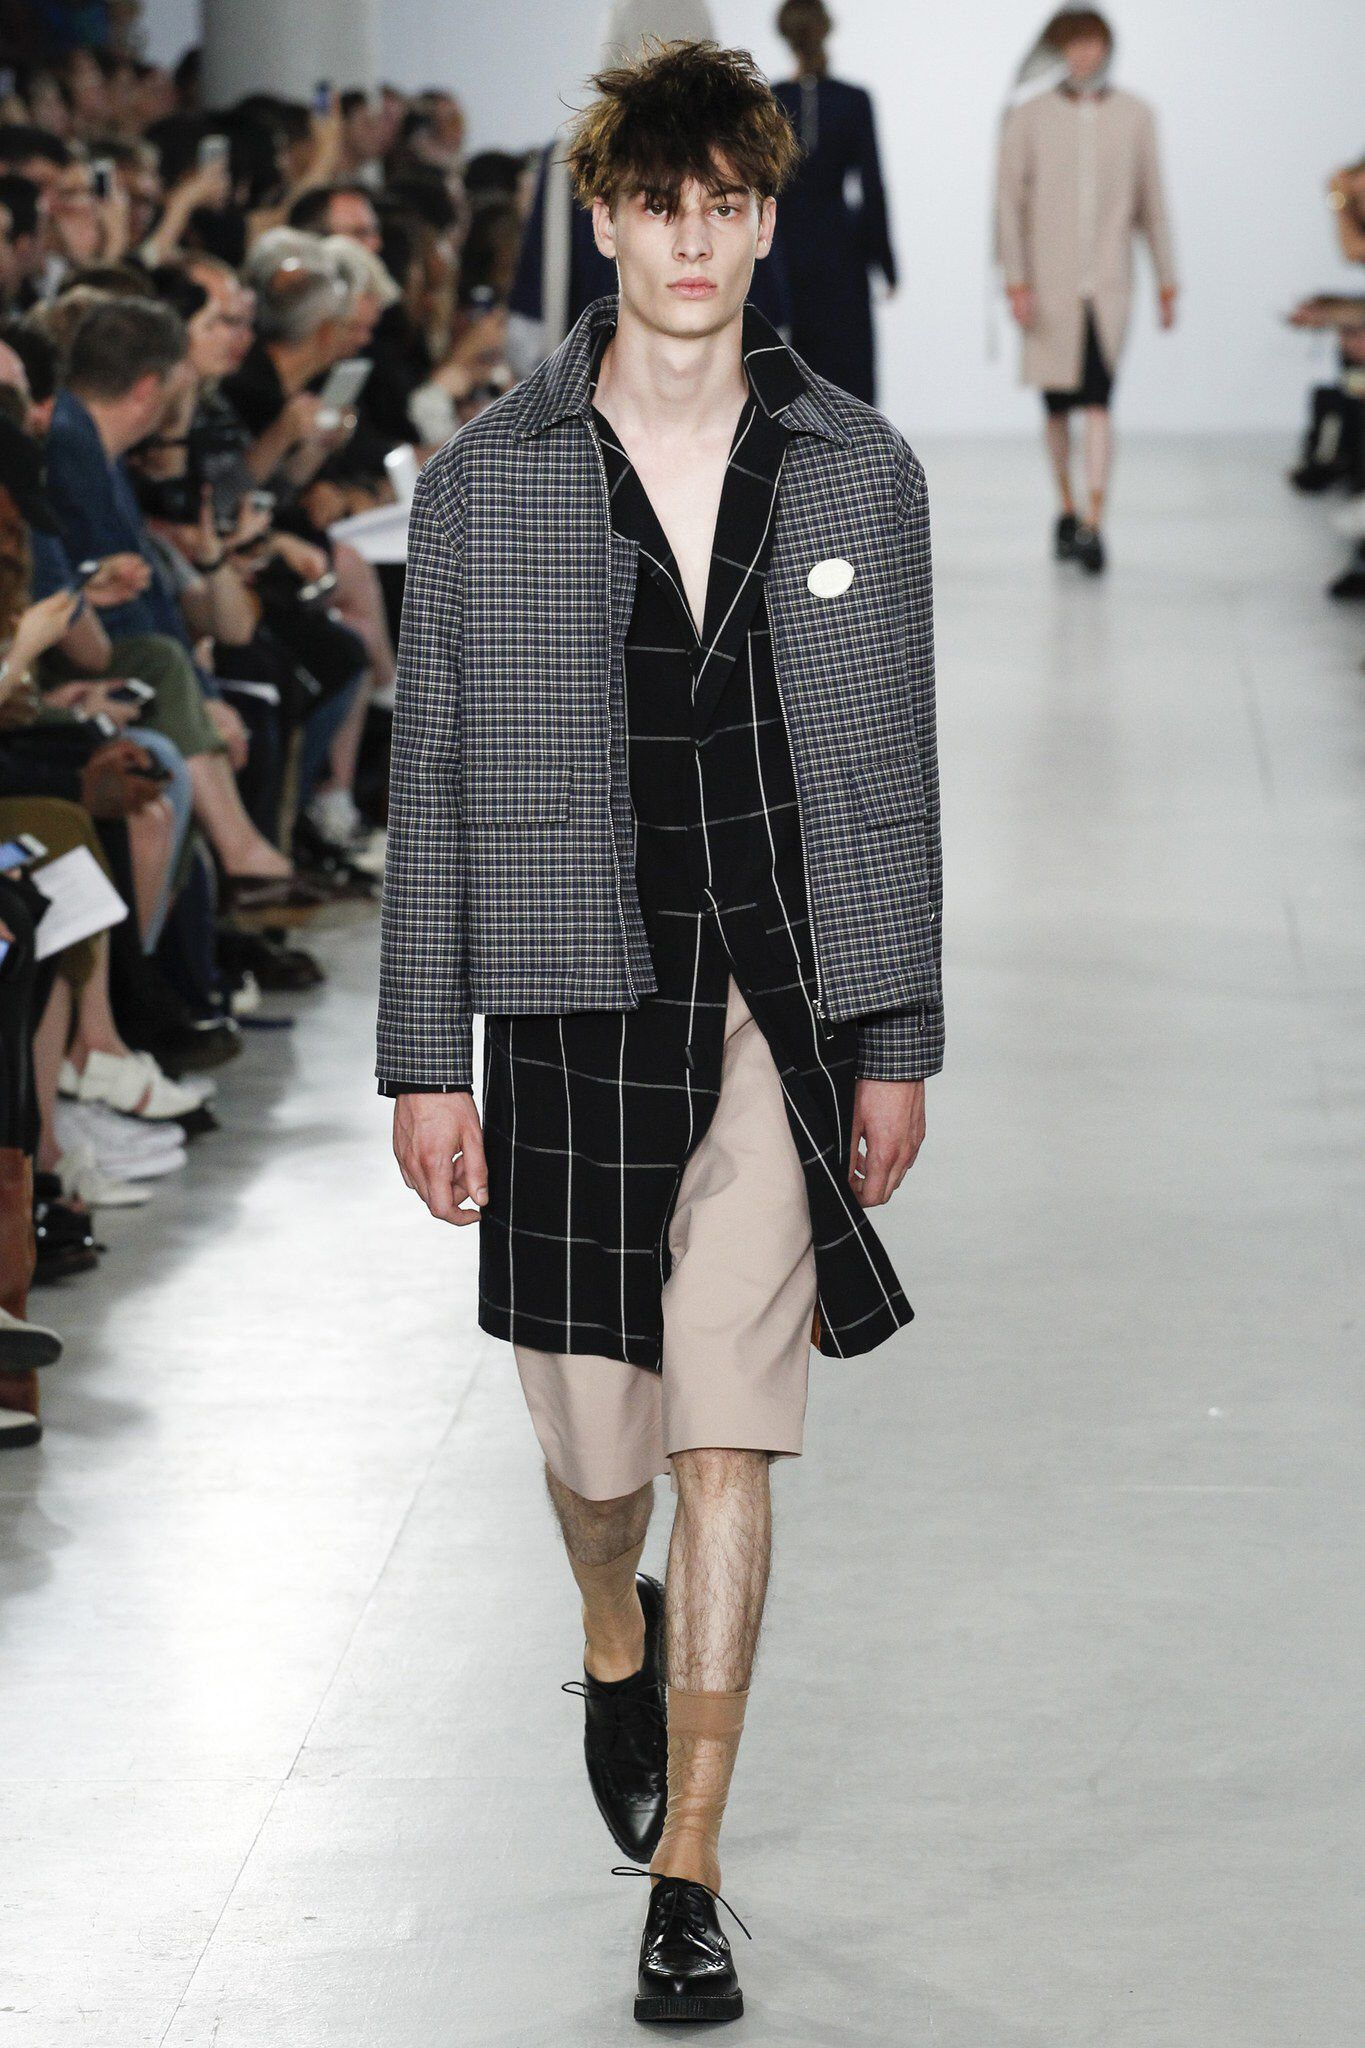 agi sam spring 2017 menswear fashion show spring fashion show was the question posed at agi sam s show this morning sam looked to his own childhood drawing inspiration from his father and mother who